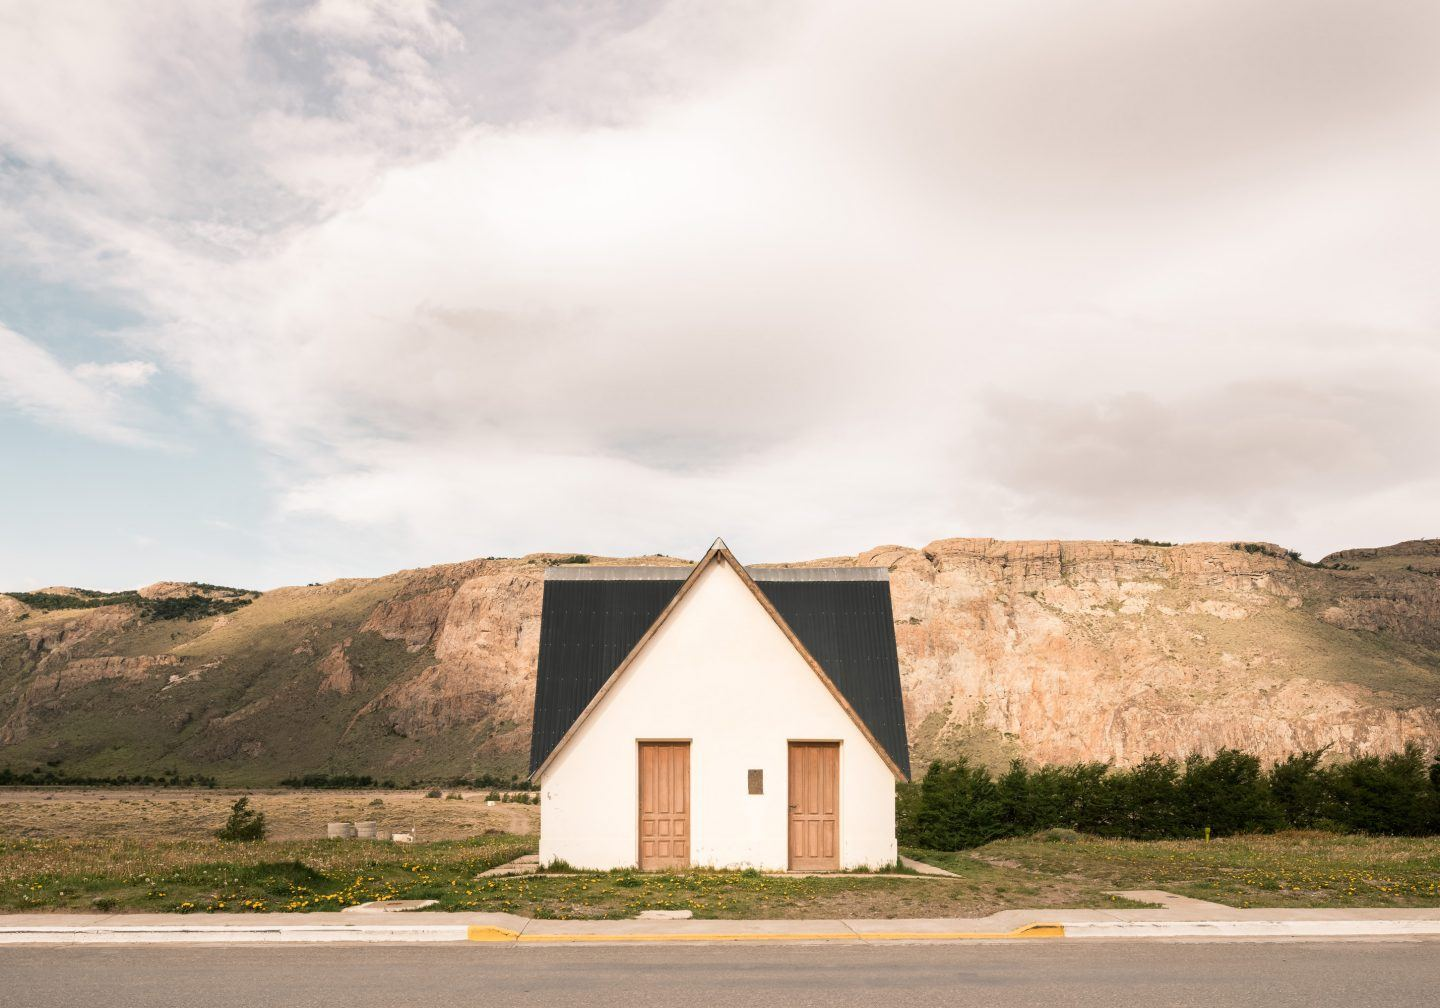 Architecture Tames Nature In Thibaud Poirier's 'Houses Of...